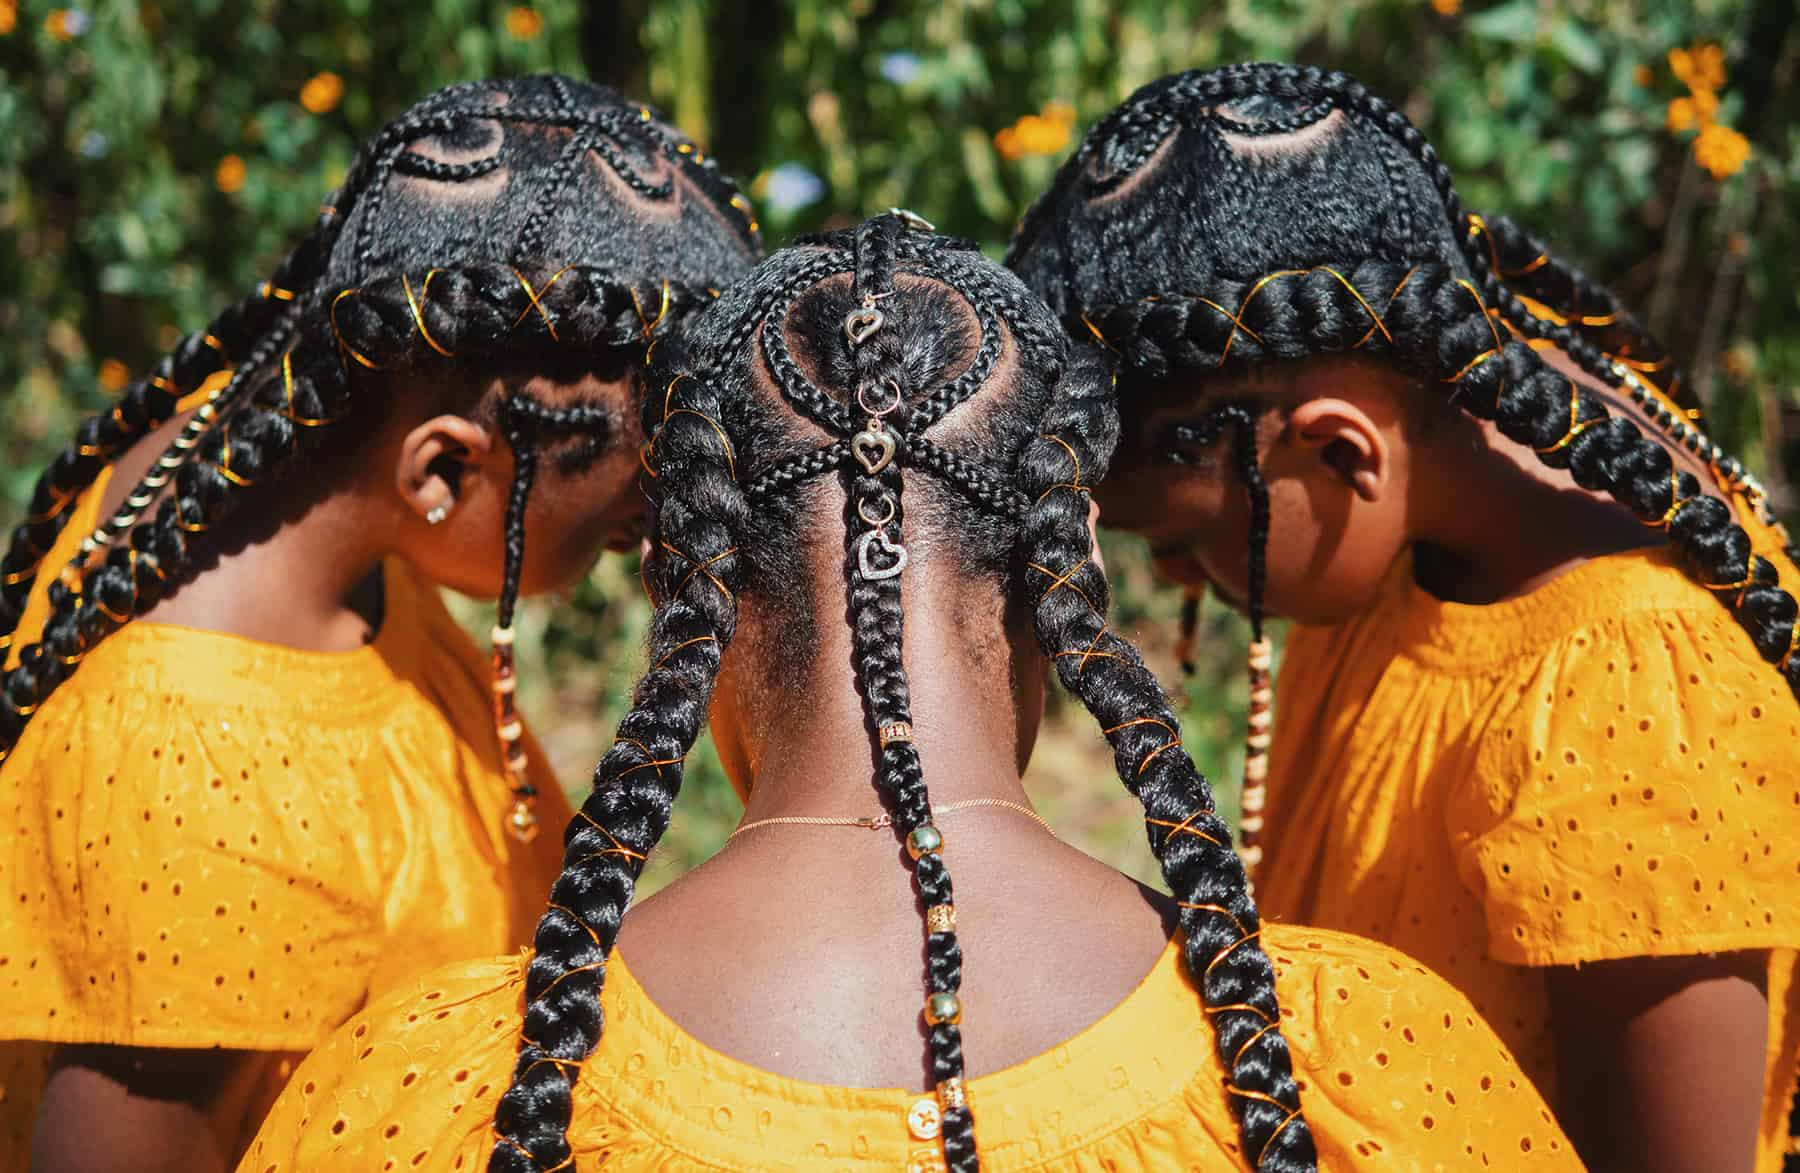 The top and back of 3 young Black women's heads are shown elaborately braided